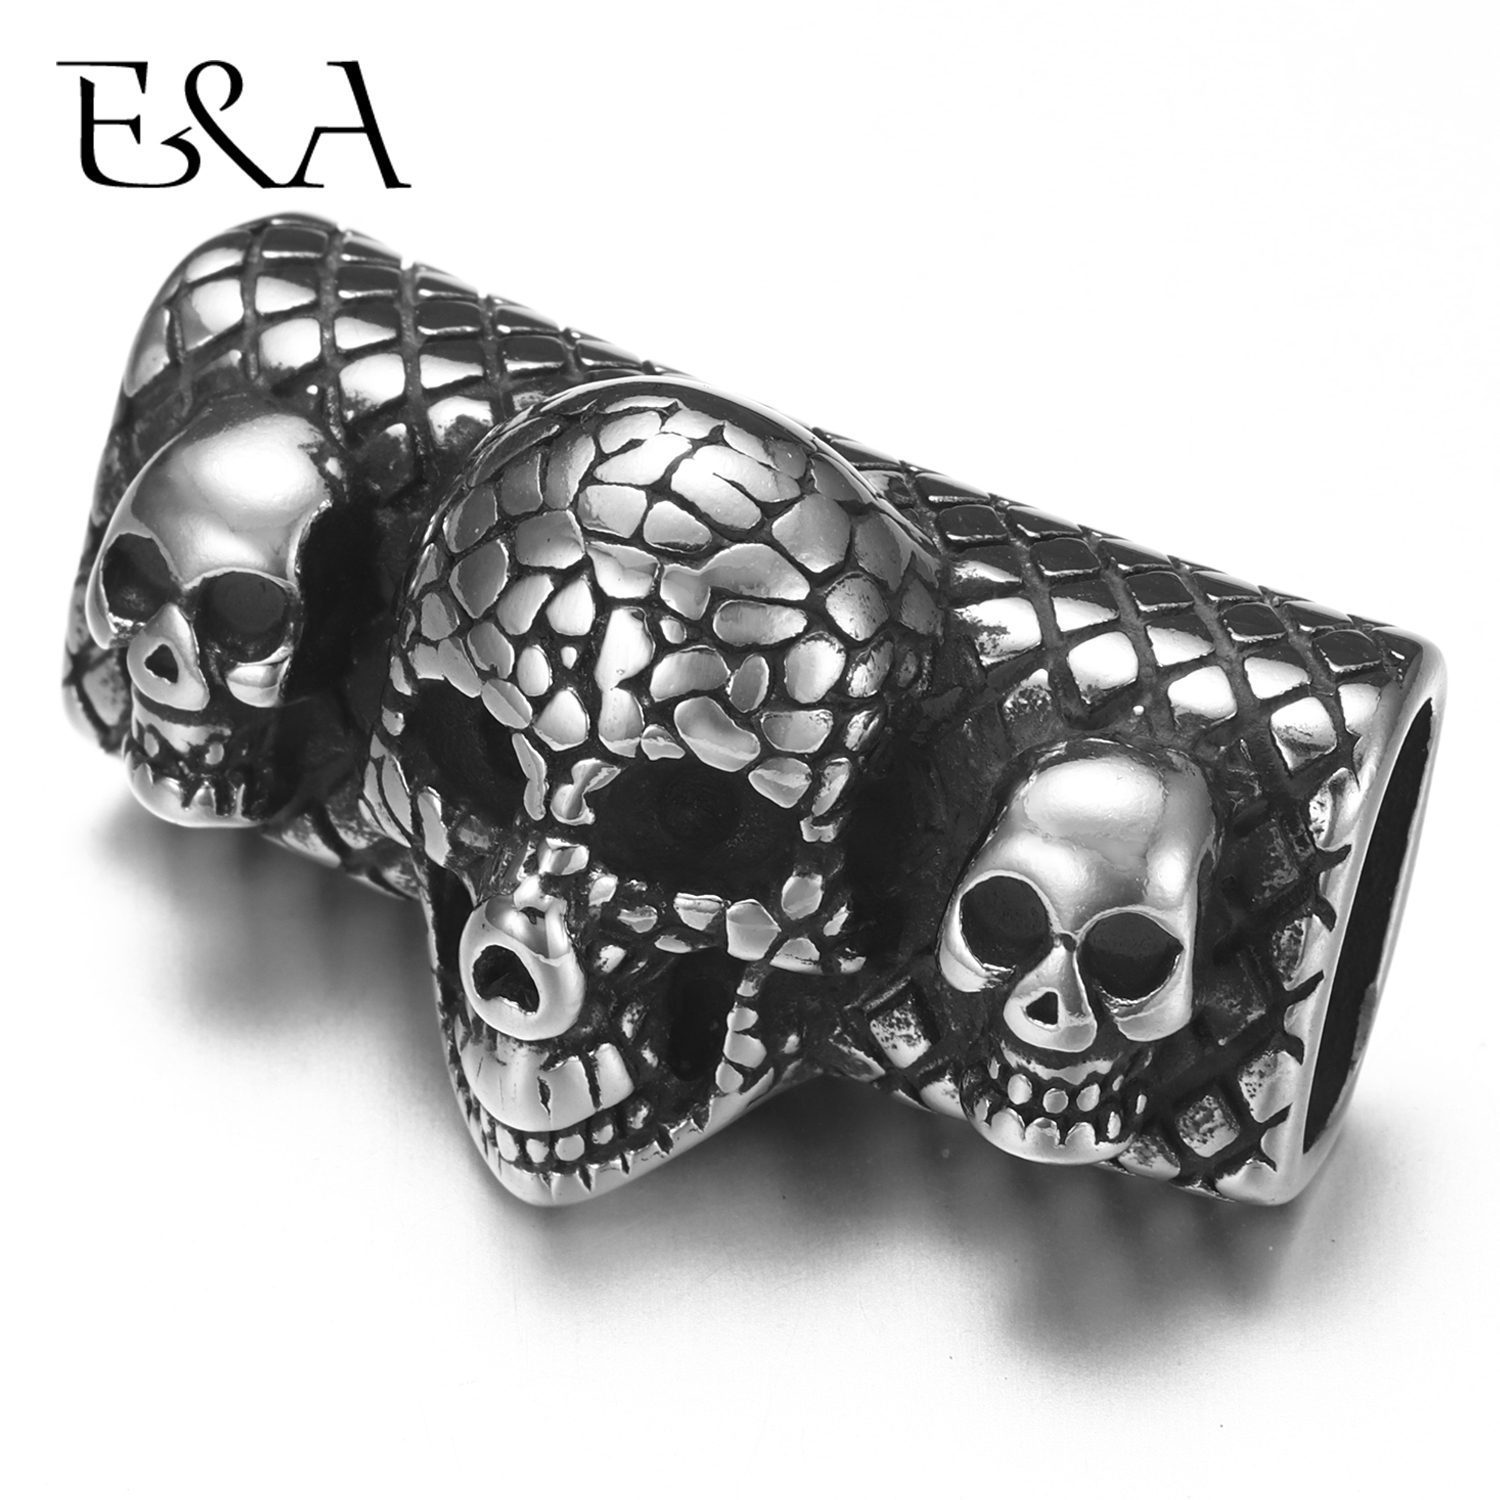 Stainless Steel Punk Three Skull Slider Beads 12*6mm Hole Slide Charms for Mens Leather Bracelet Jewelry Making DIY Accessories